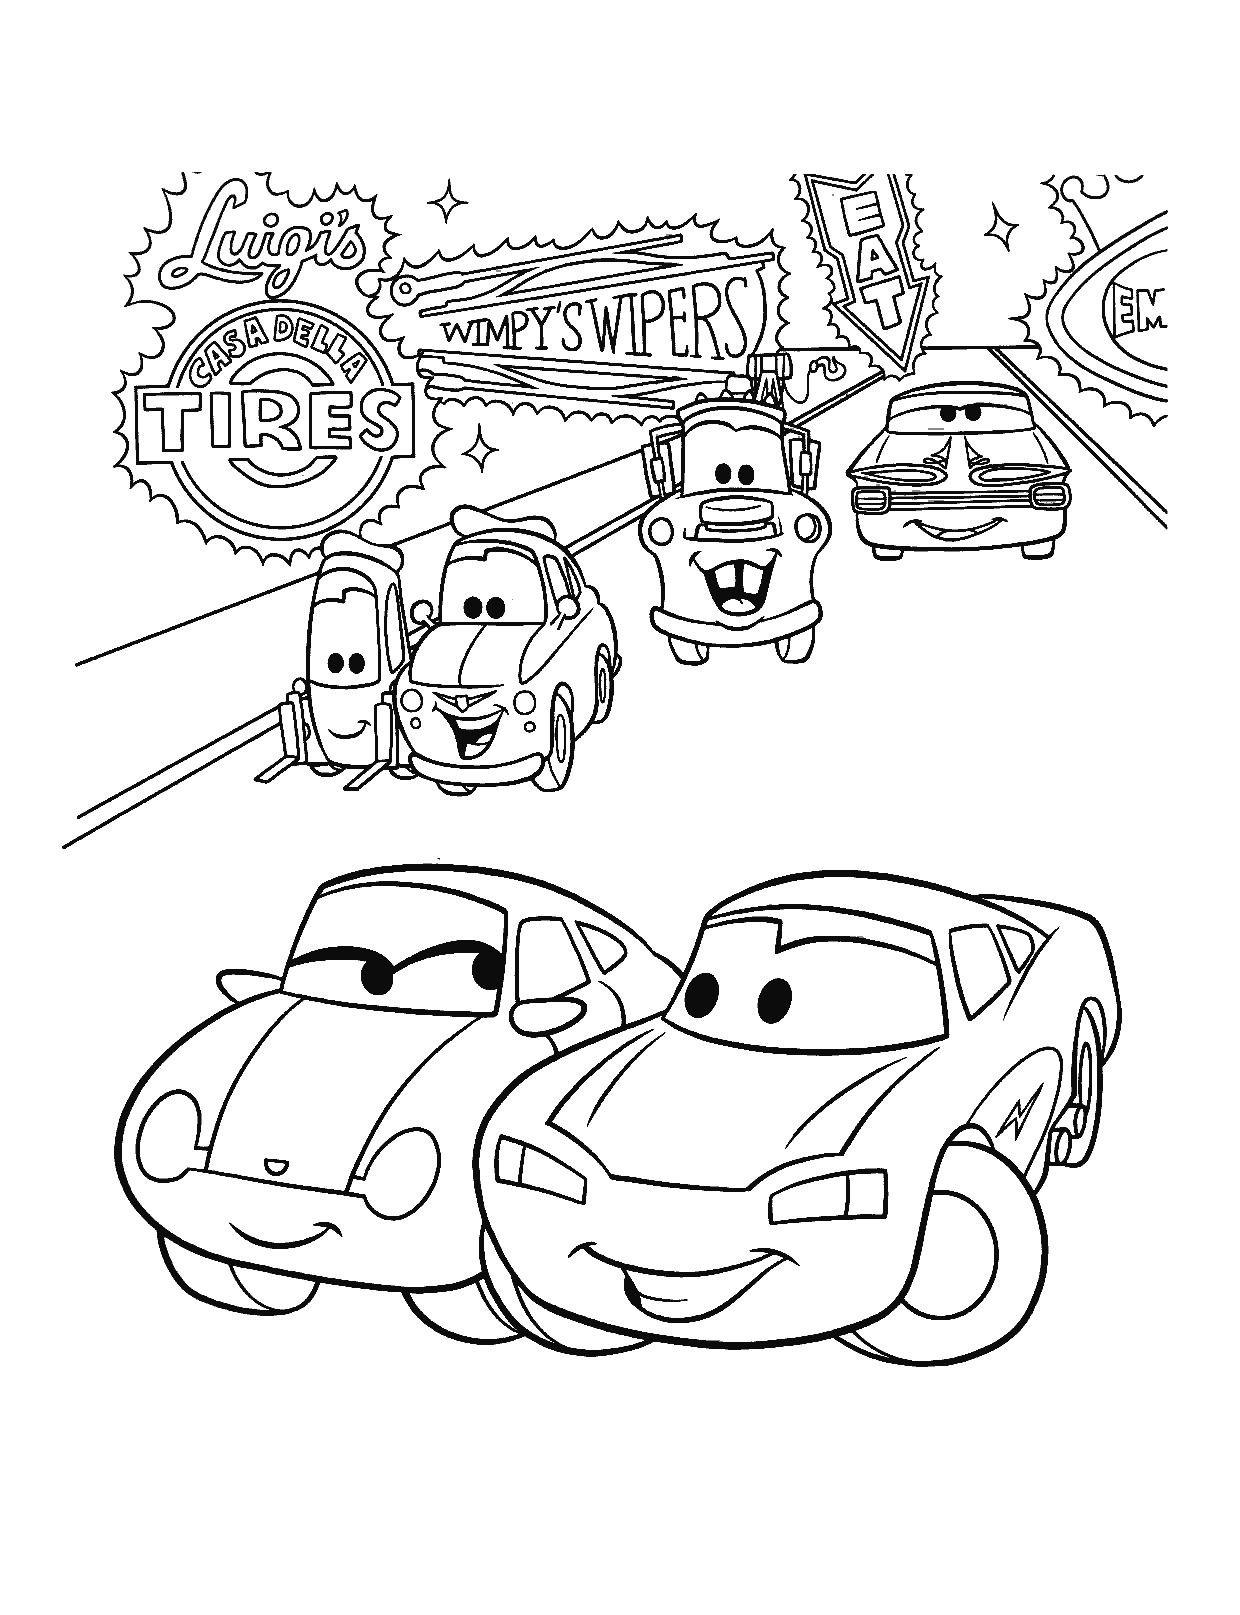 disney pixar cars coloring pages to print for 2019 http ...